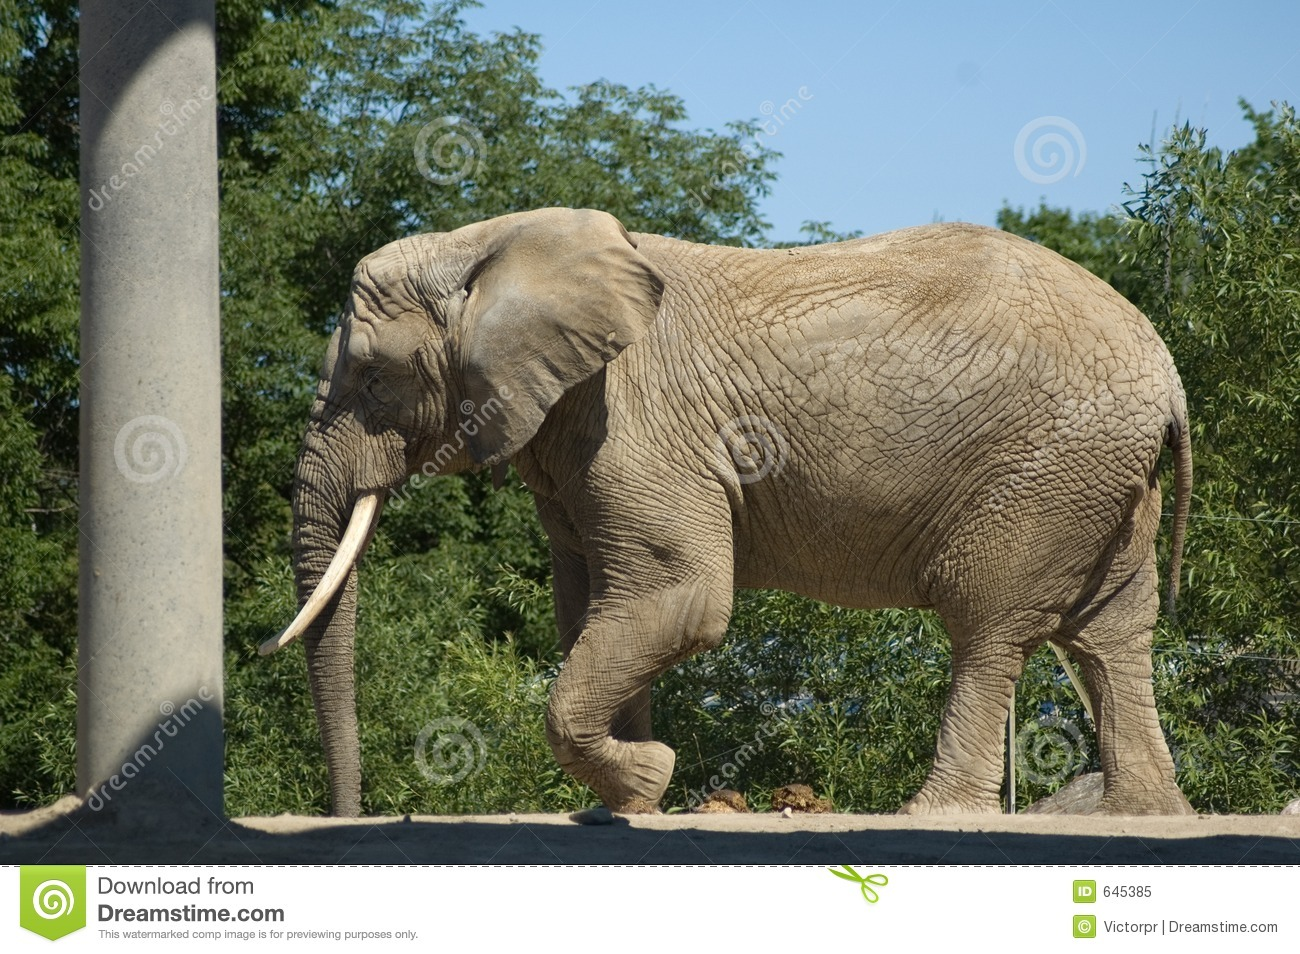 Elephant adults only are absolutely